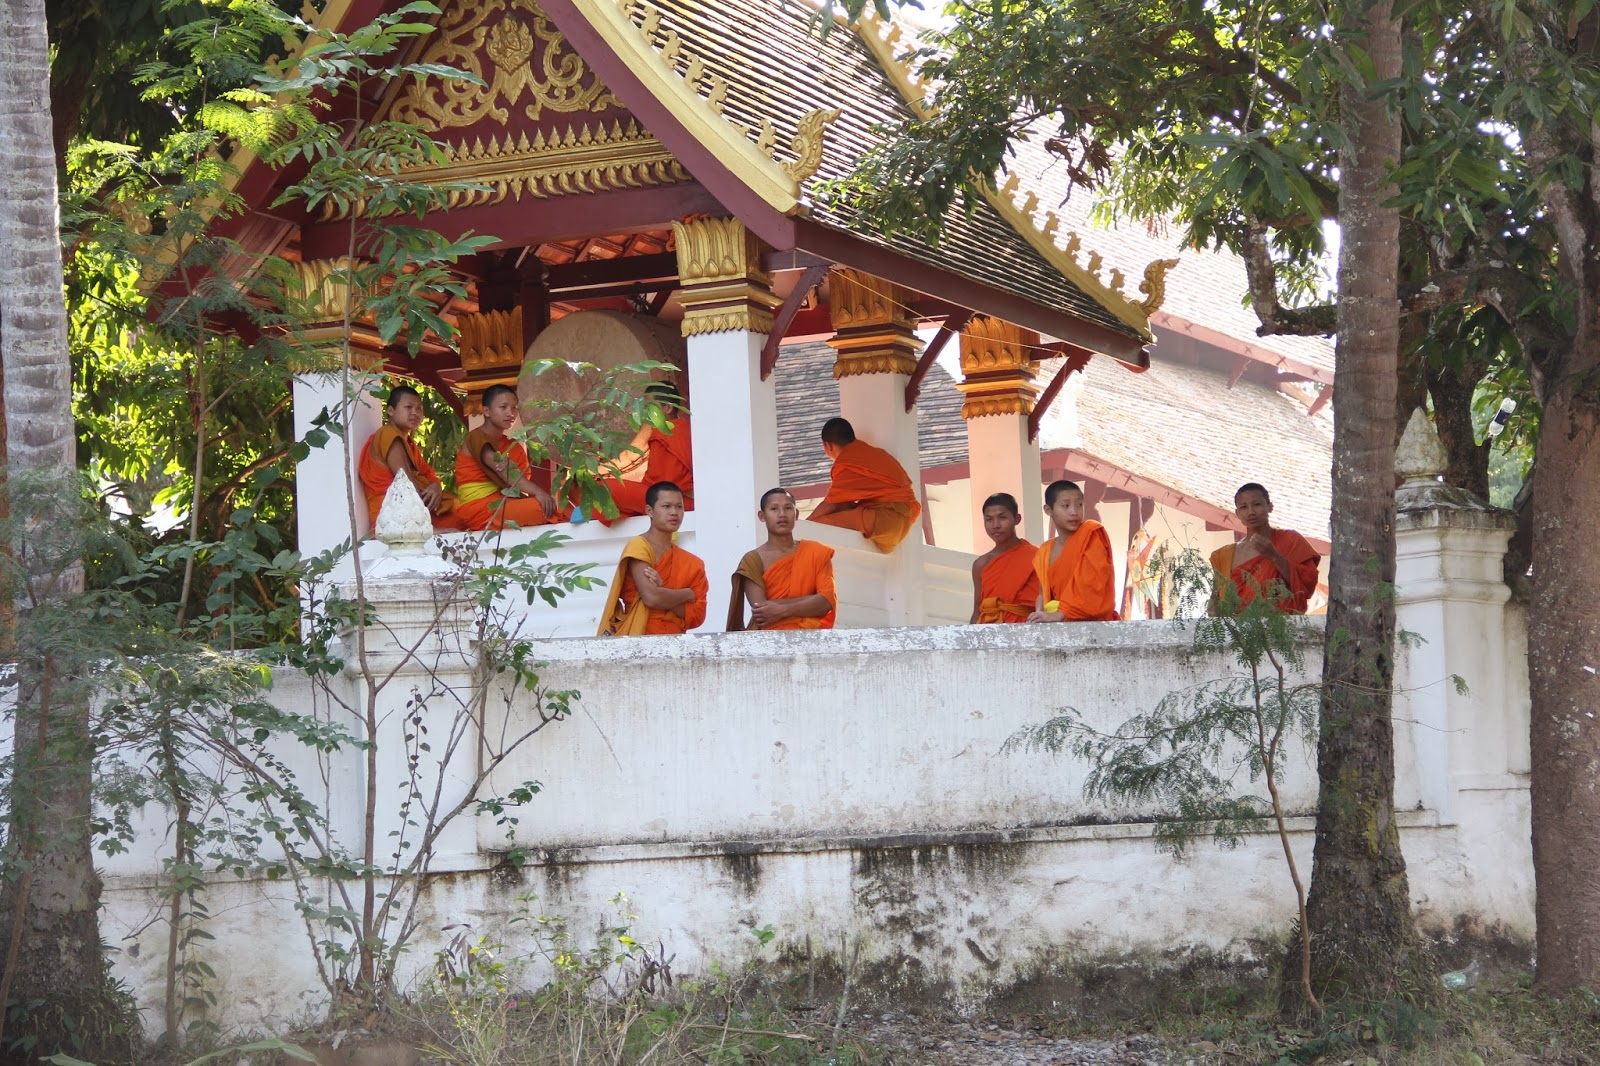 Saffron-robed young monks in Luang Prabang at one of the many monastery/schools.